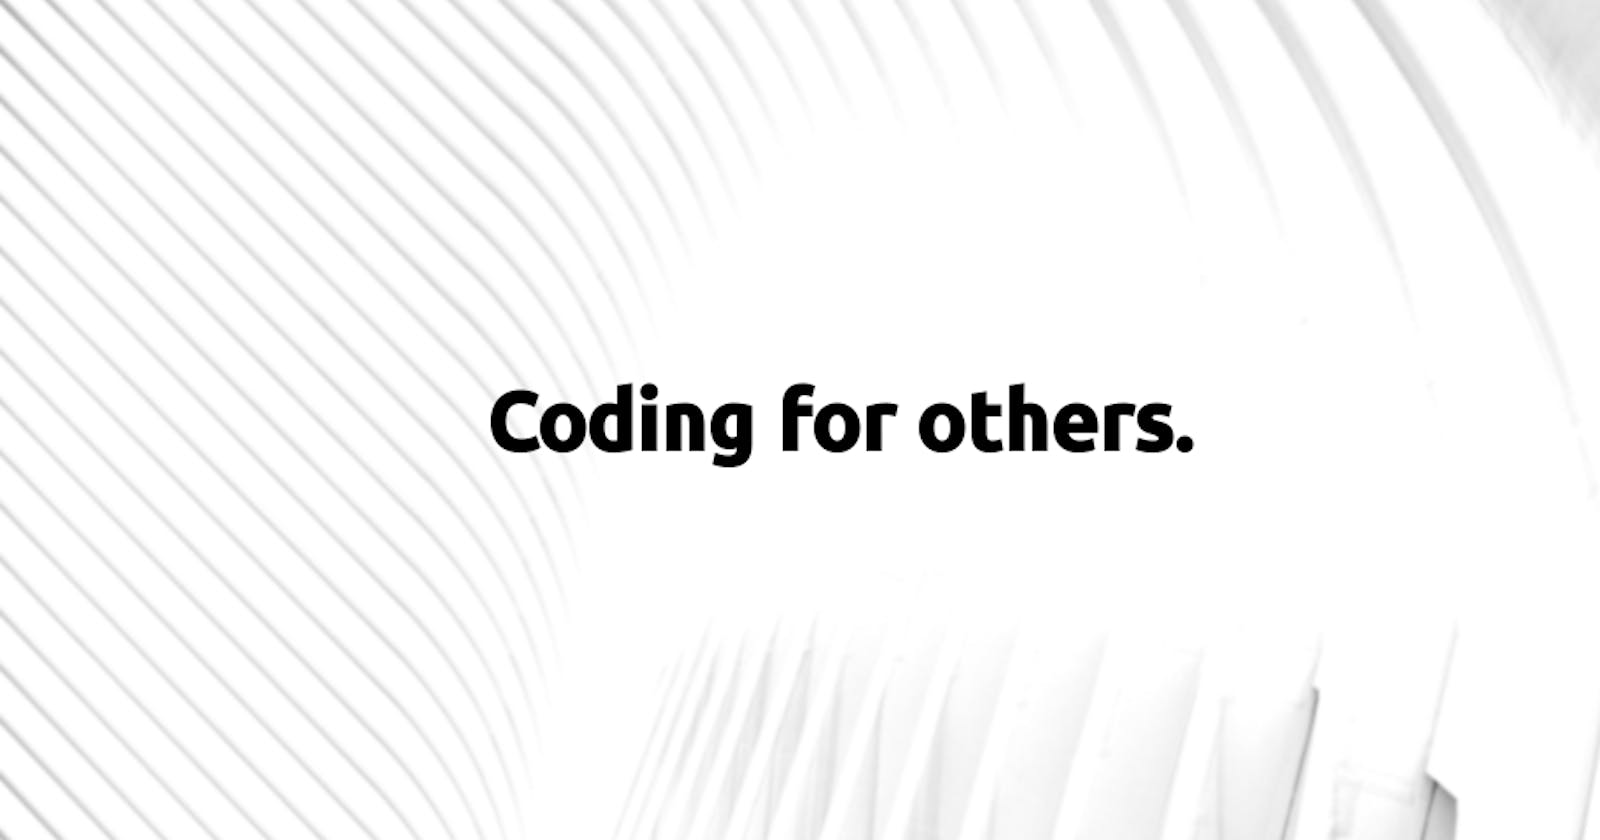 Writing code for others